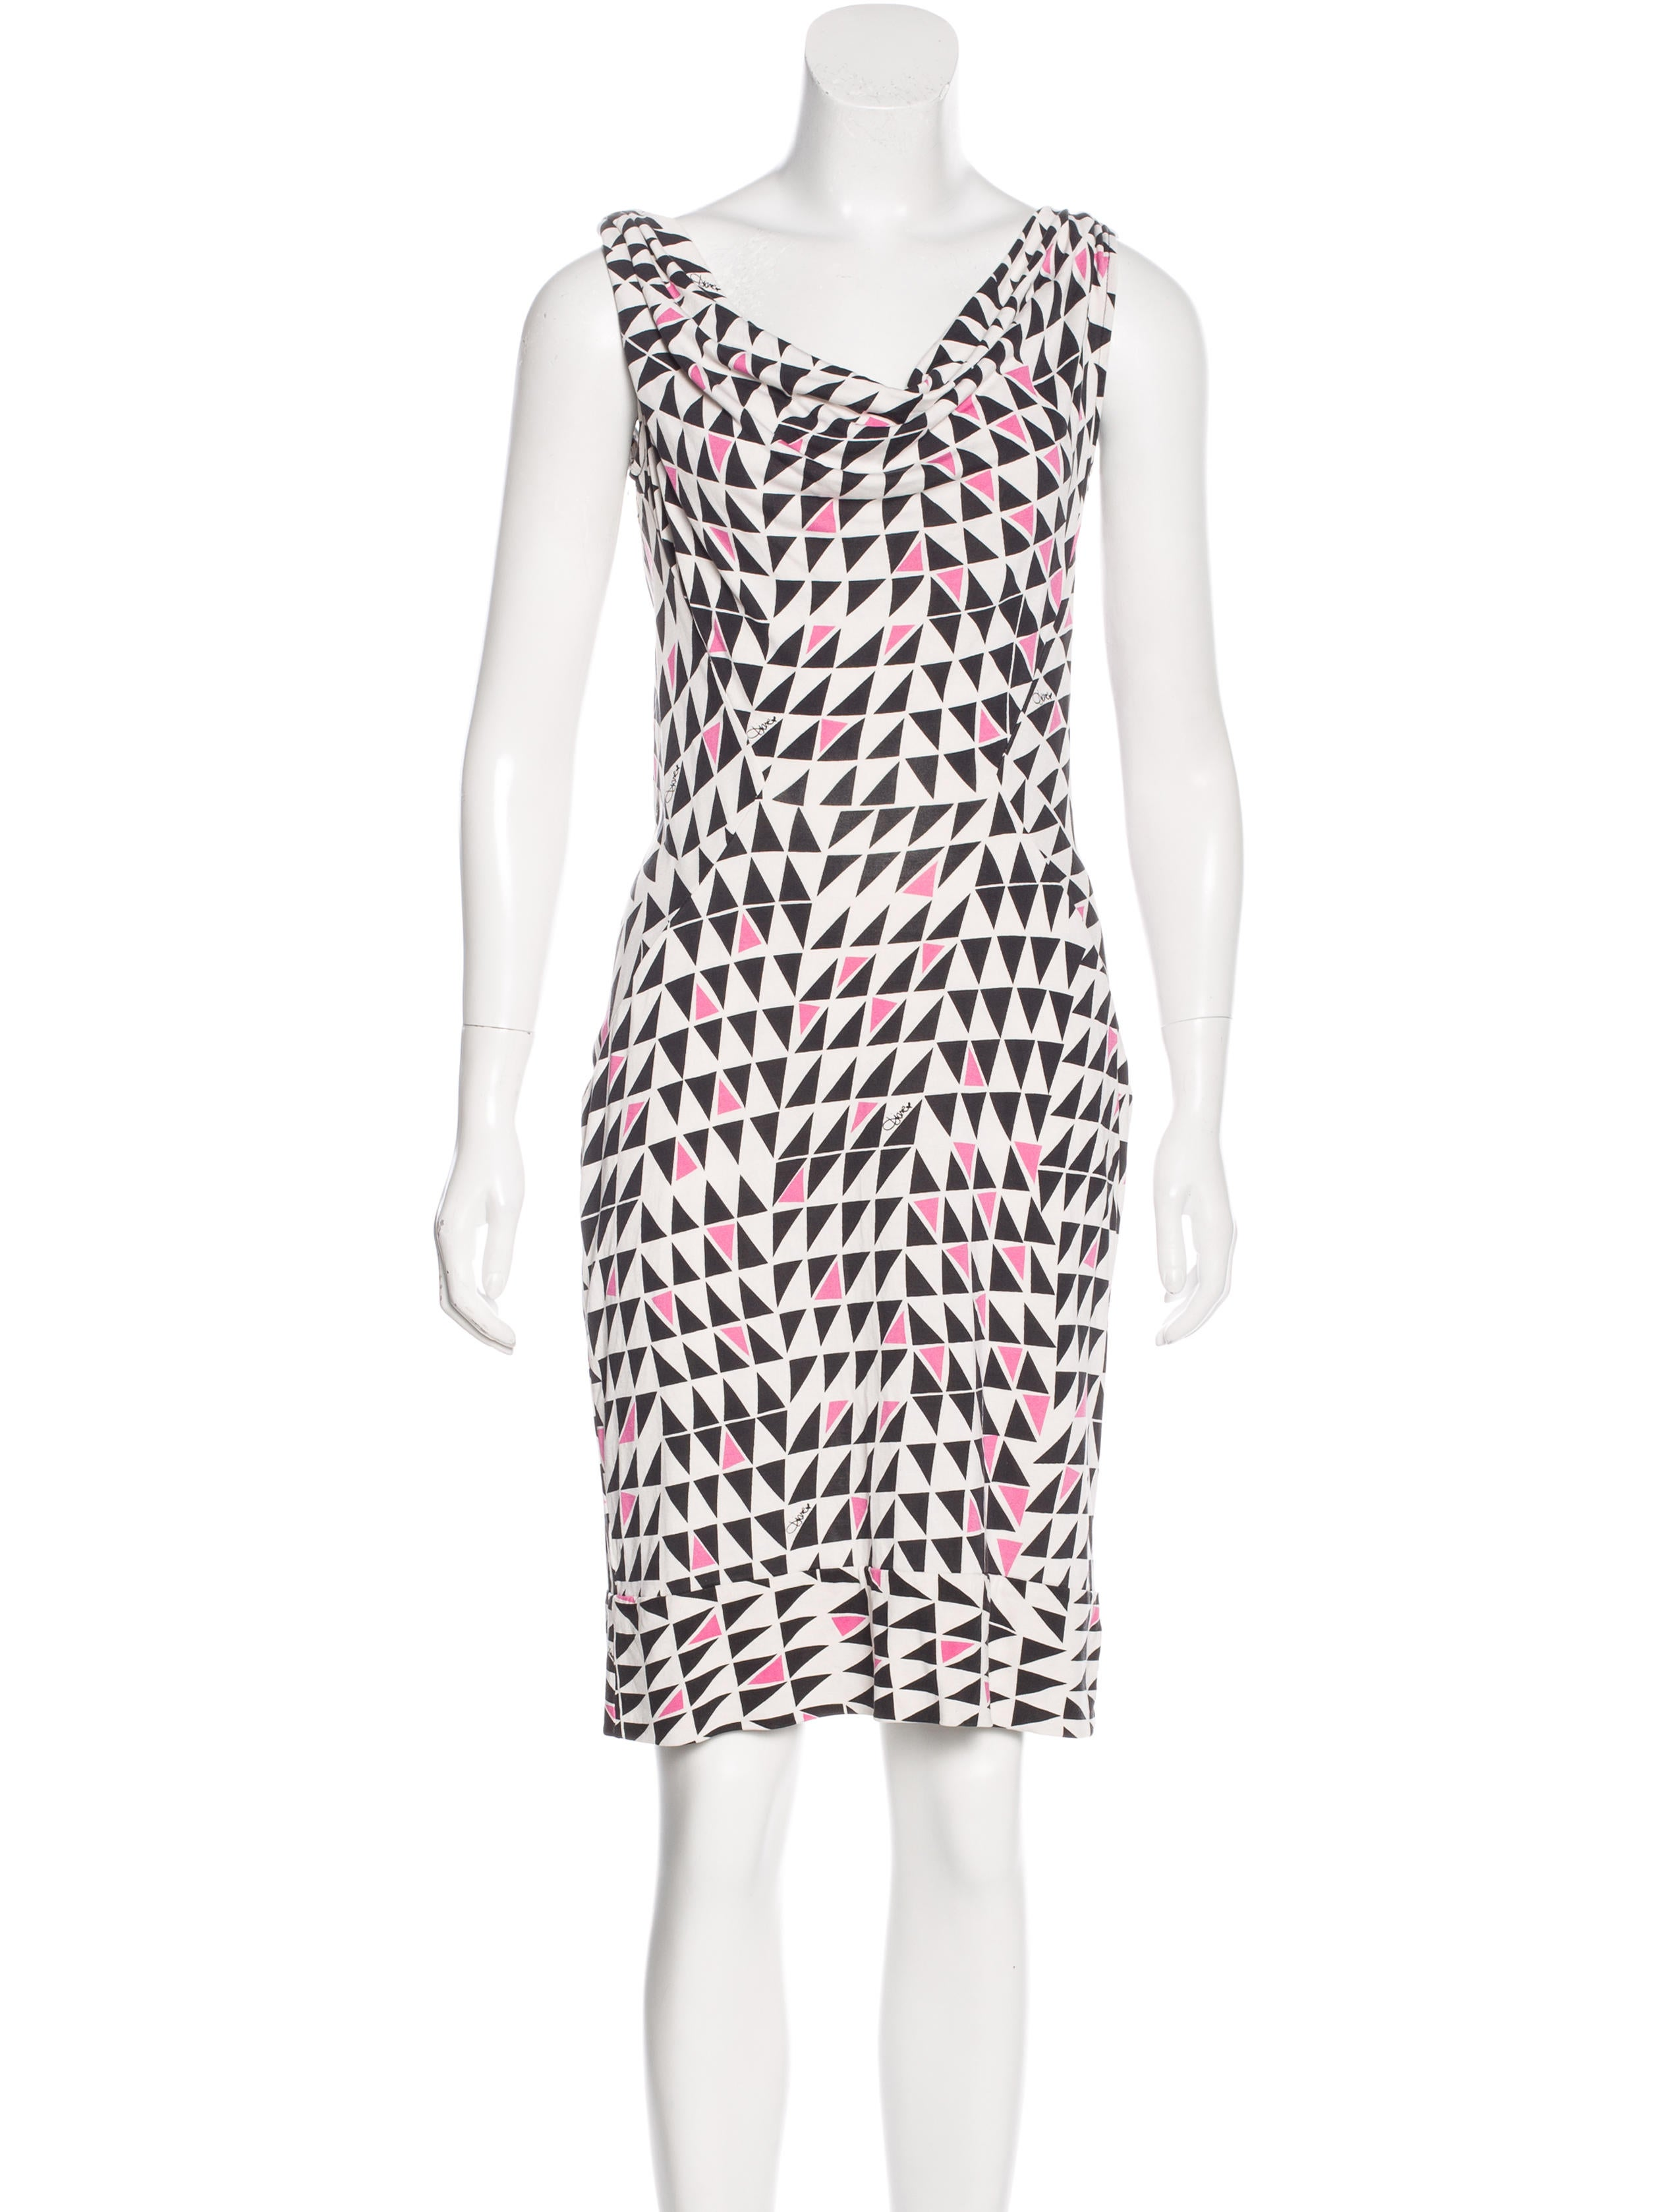 Diane von furstenberg silk printed dress clothing for Diane von furstenberg clothes